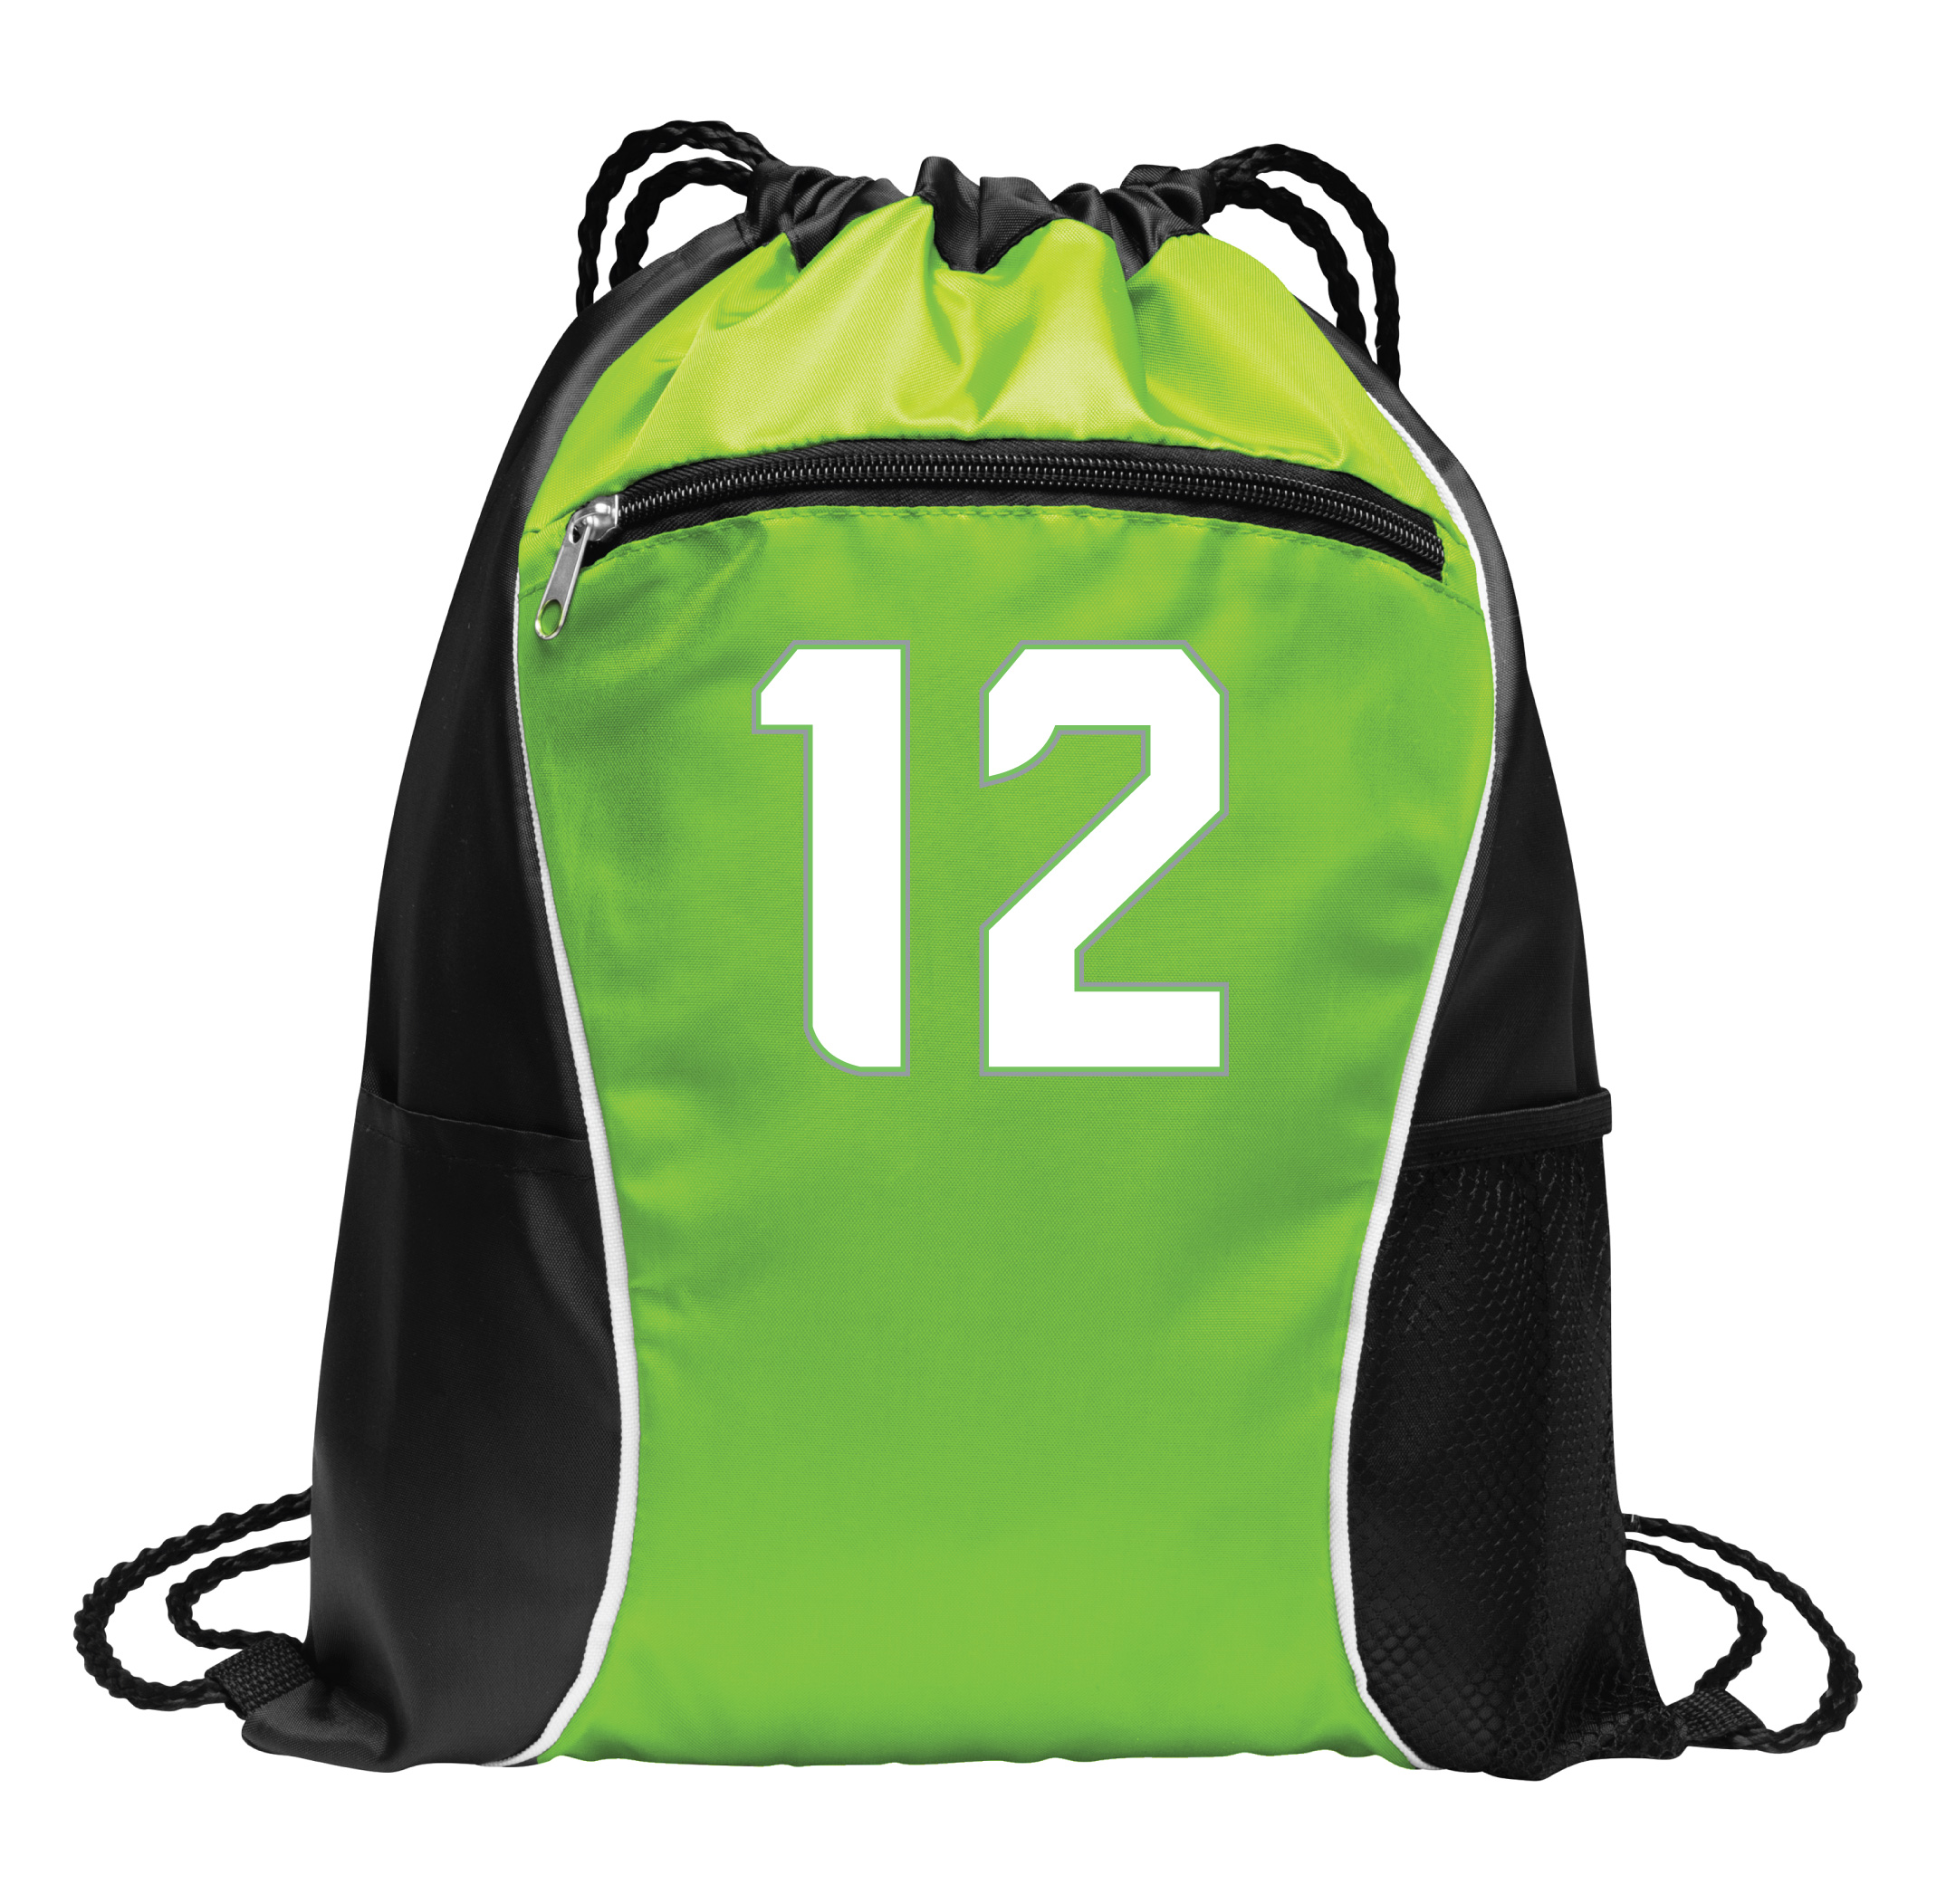 Seattle Seahawks #12 cinch bag by Code Four Athletics